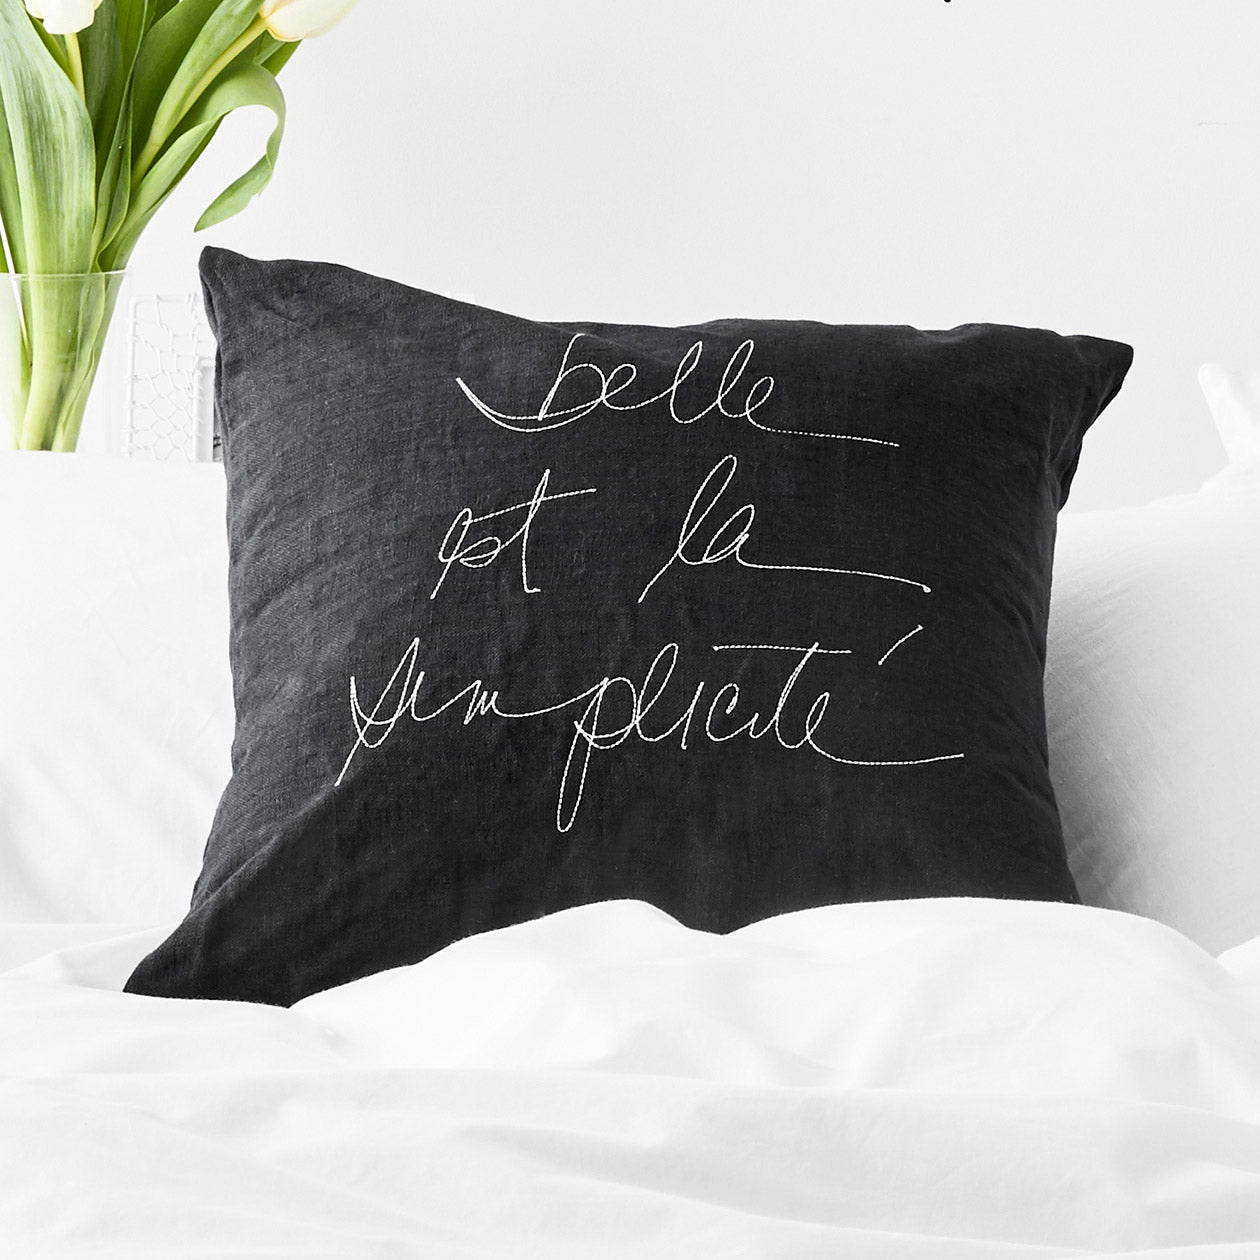 embroidered belle est la simplicité pillow cover black